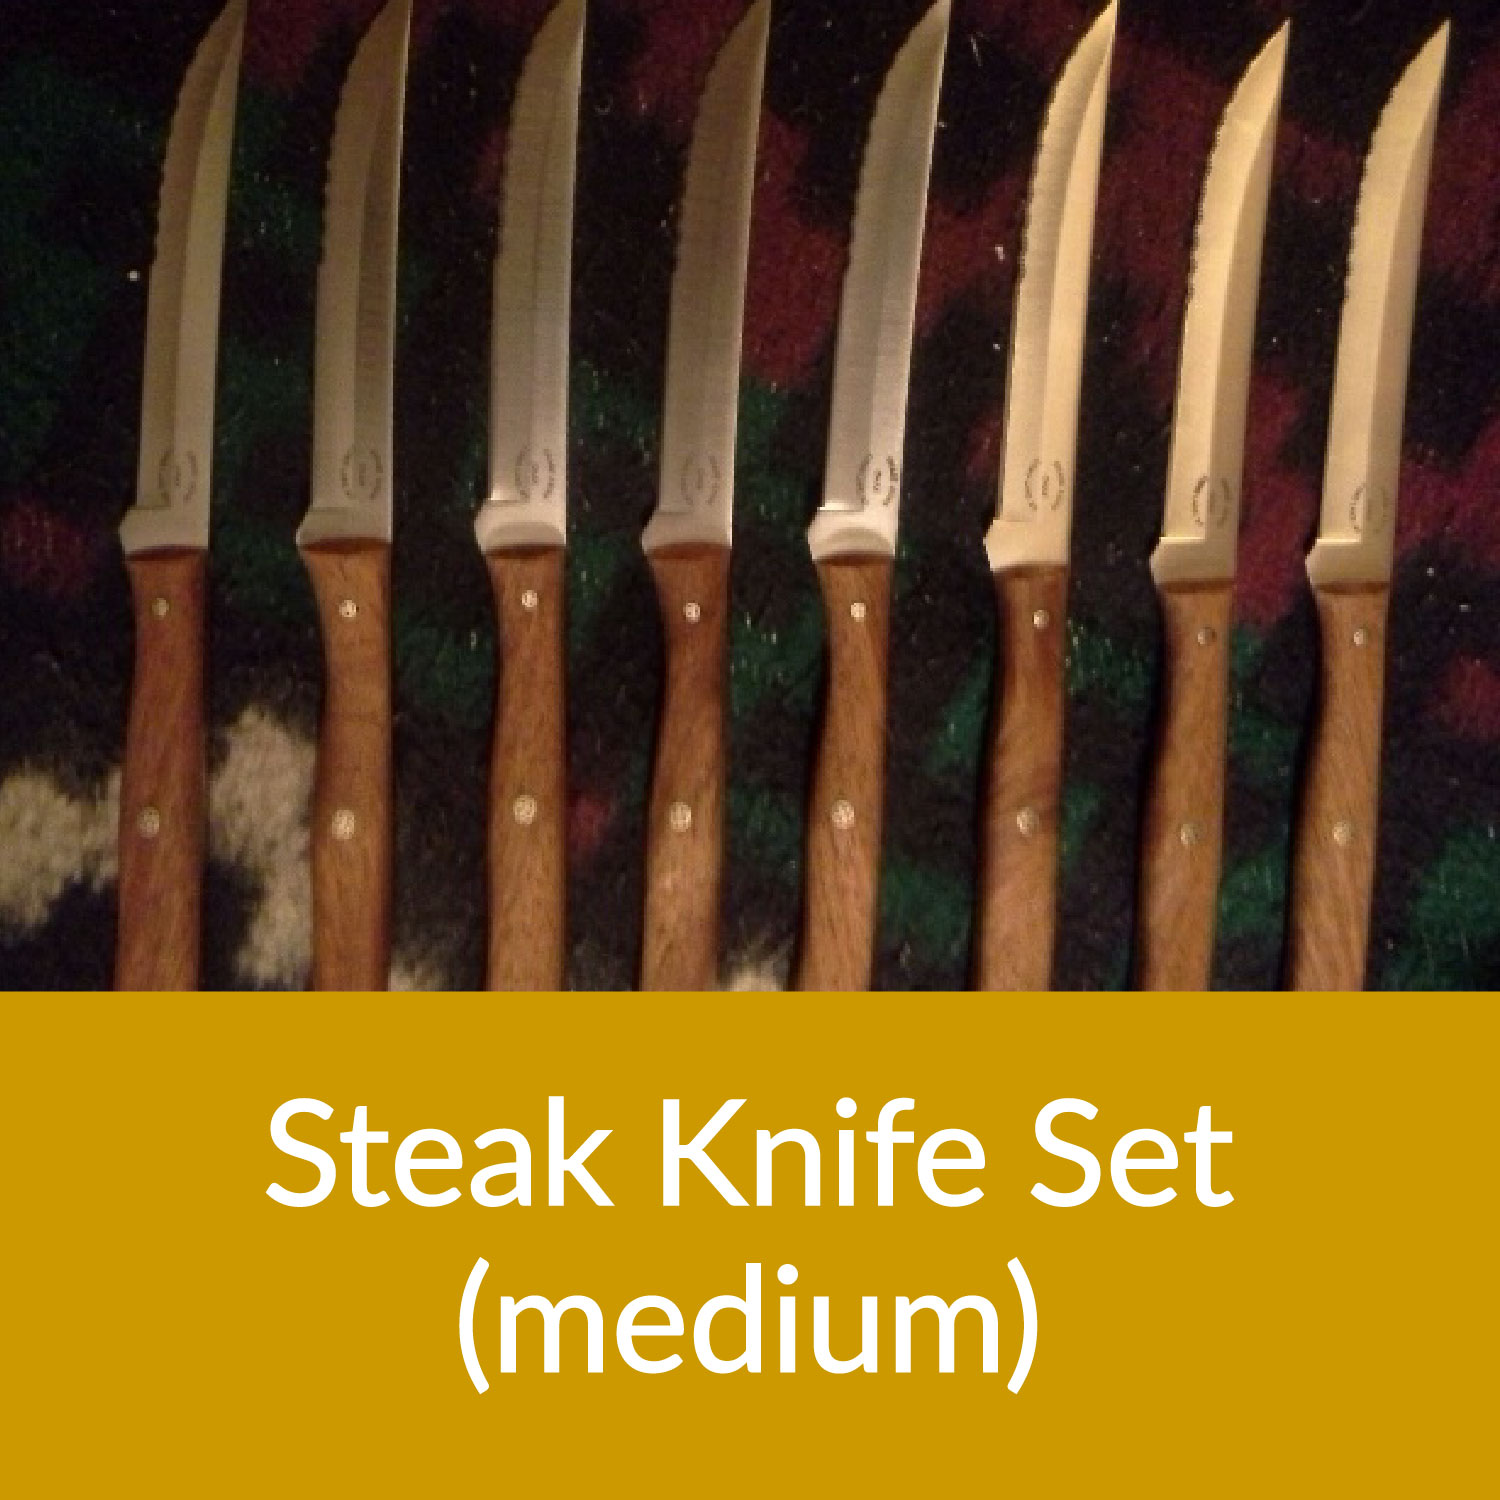 Medium Steak Knife Set